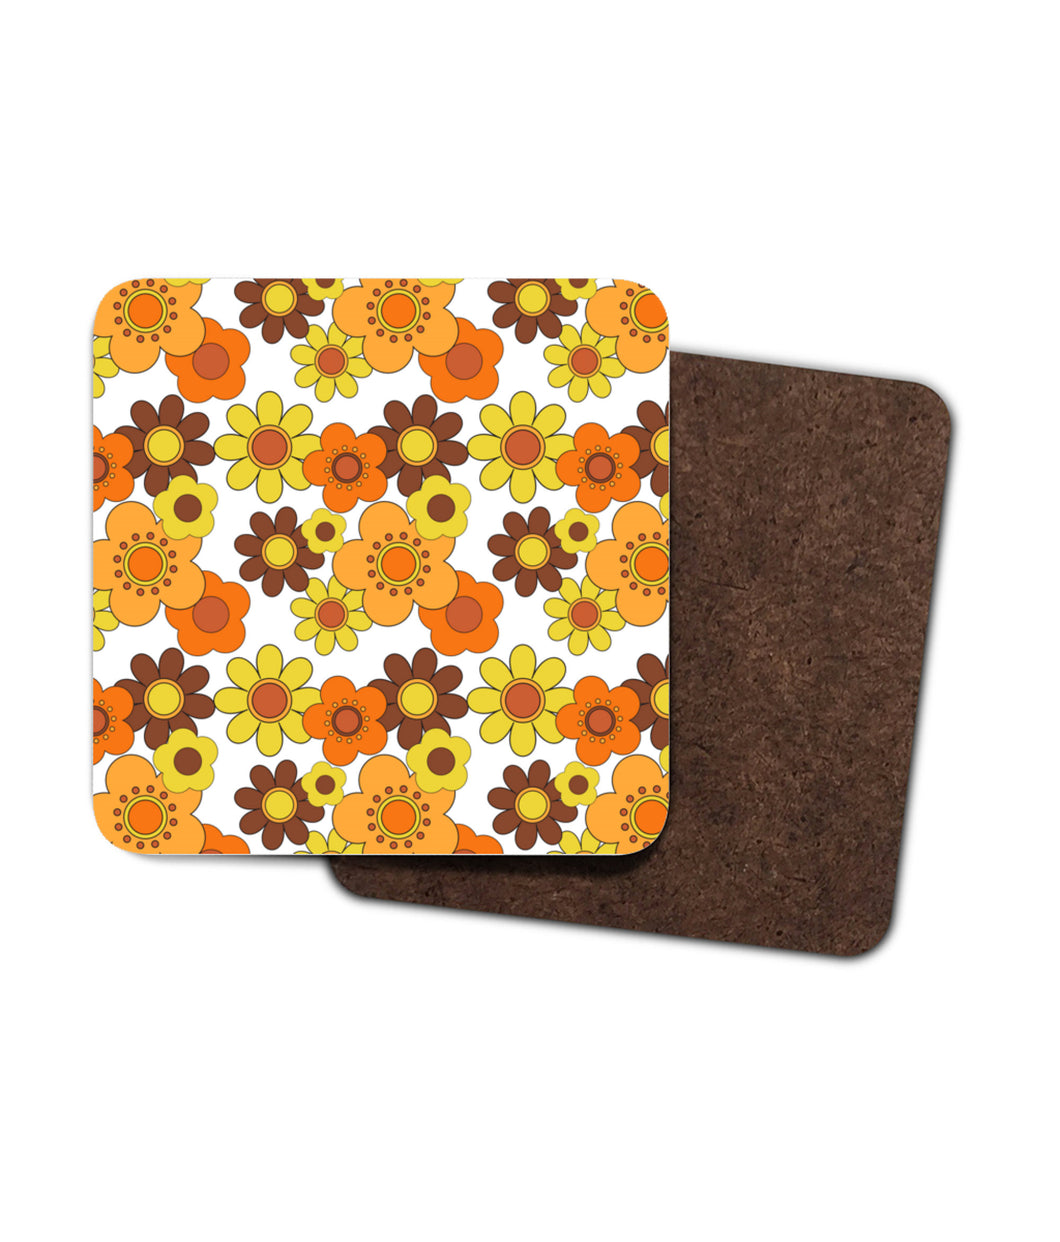 Vintage Retro Style Orange and Yellow Floral Coasters. Set of Two or Four in 1960's 1970's Style.